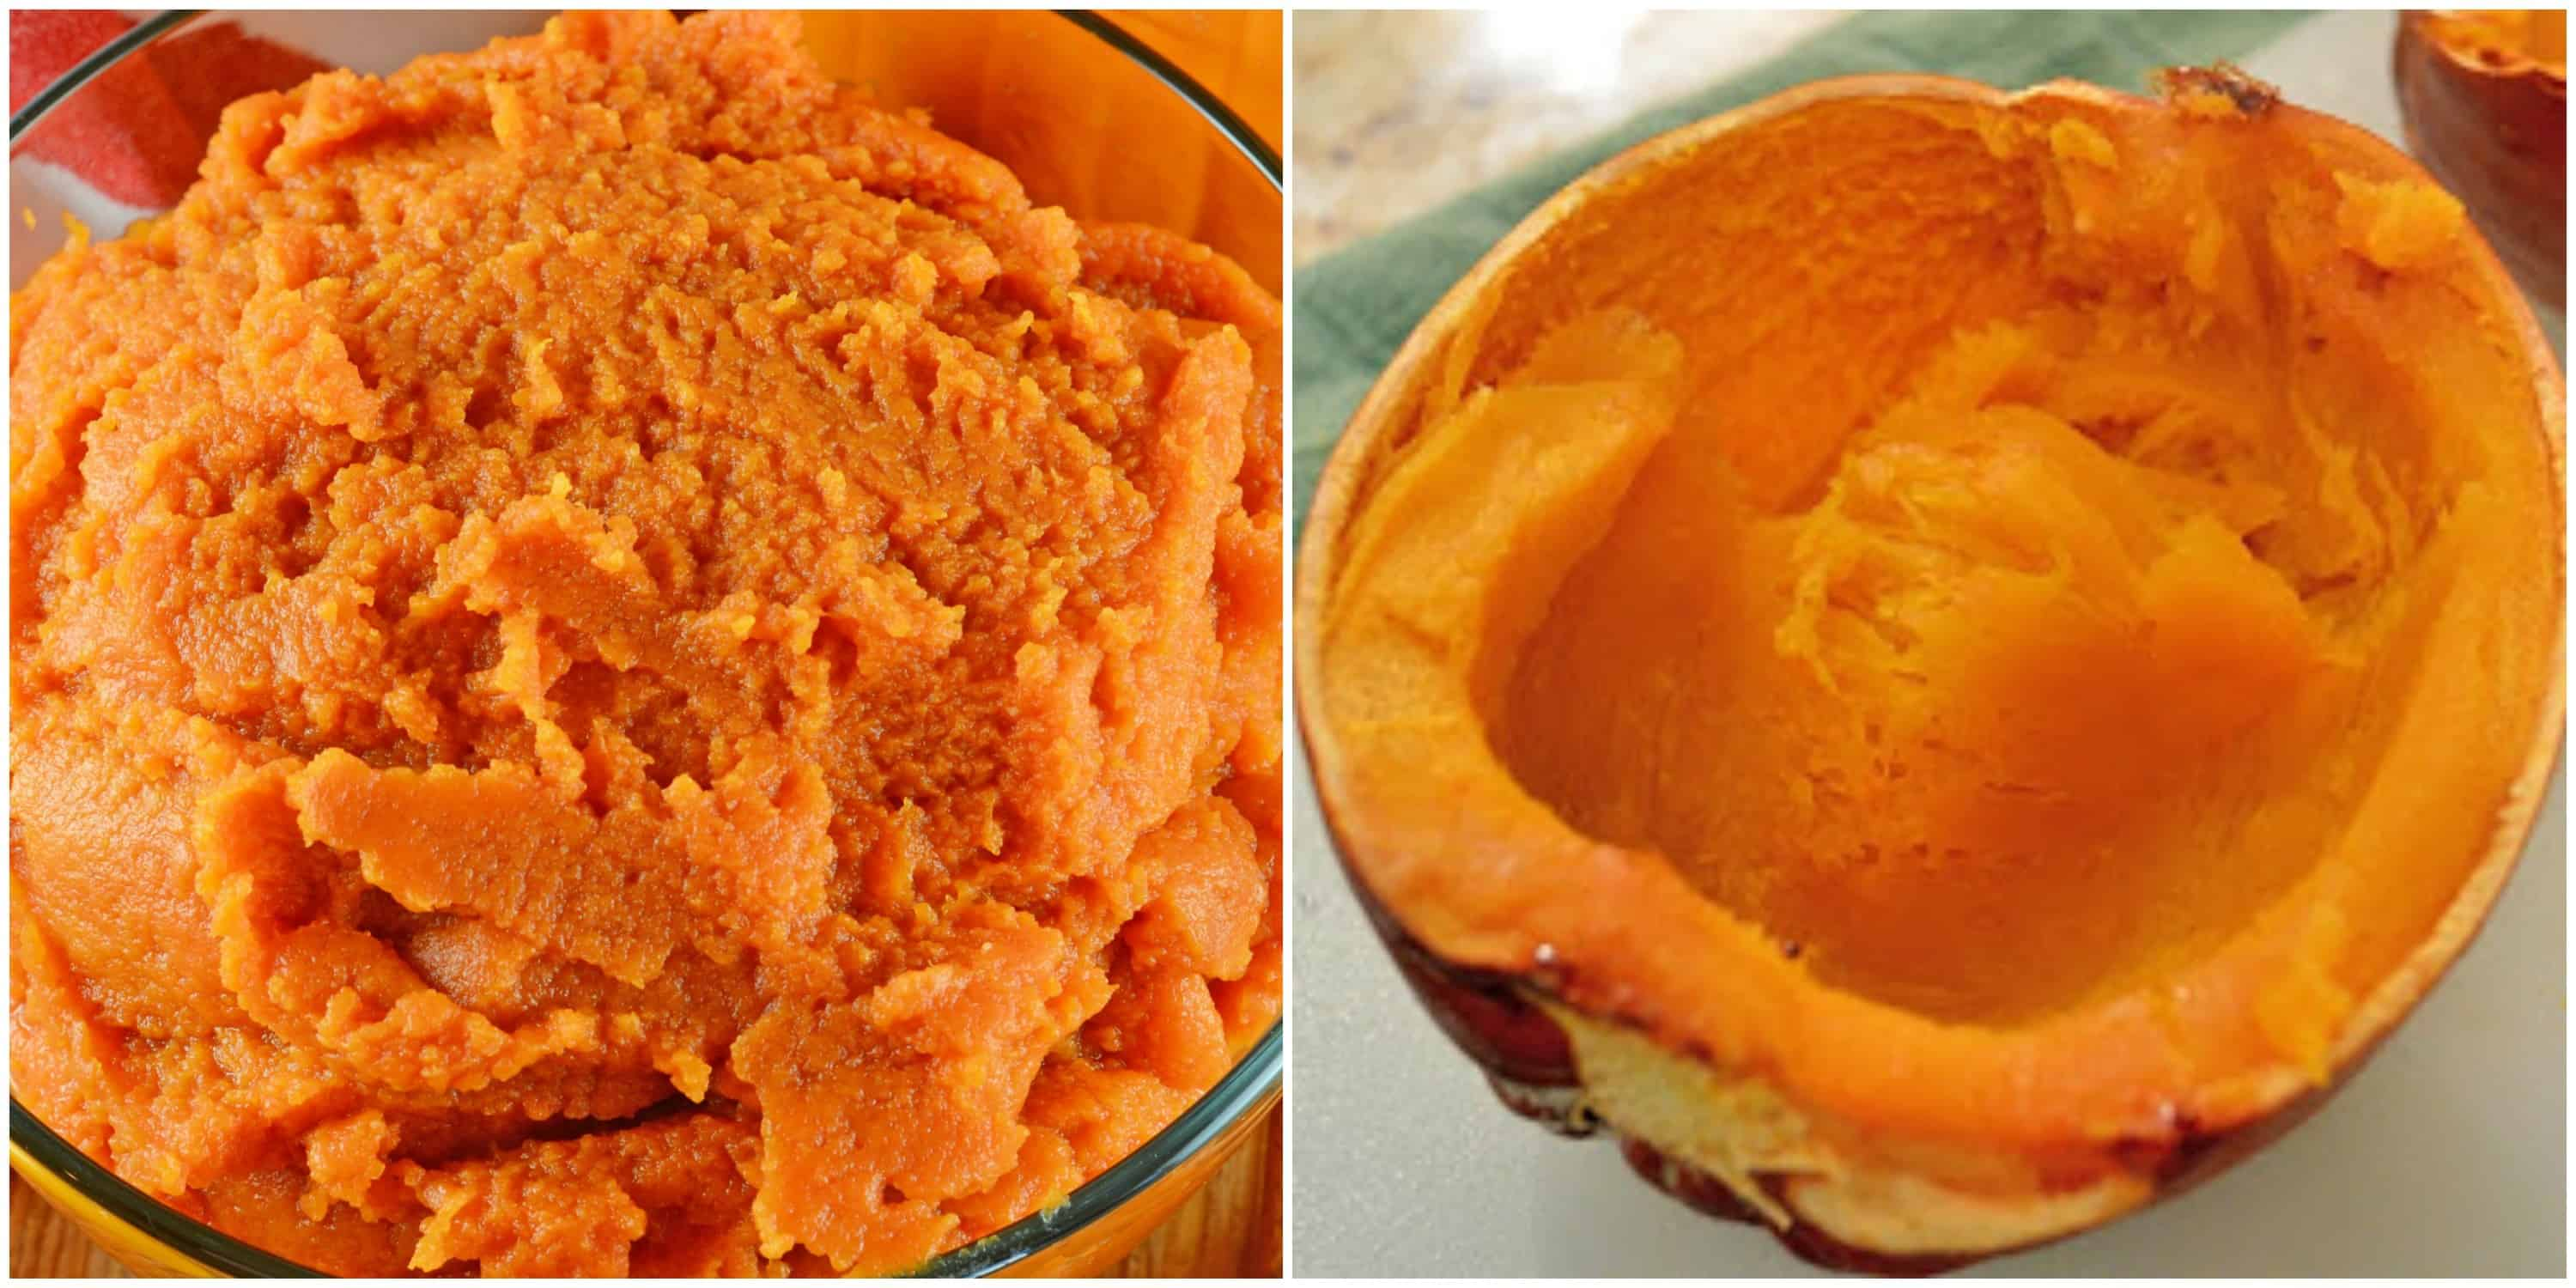 Make your own pumpkin puree using one ingredient: pumpkin. Learn about the pie pumpkin and find pumpkin recipes to use your pumpkin puree.